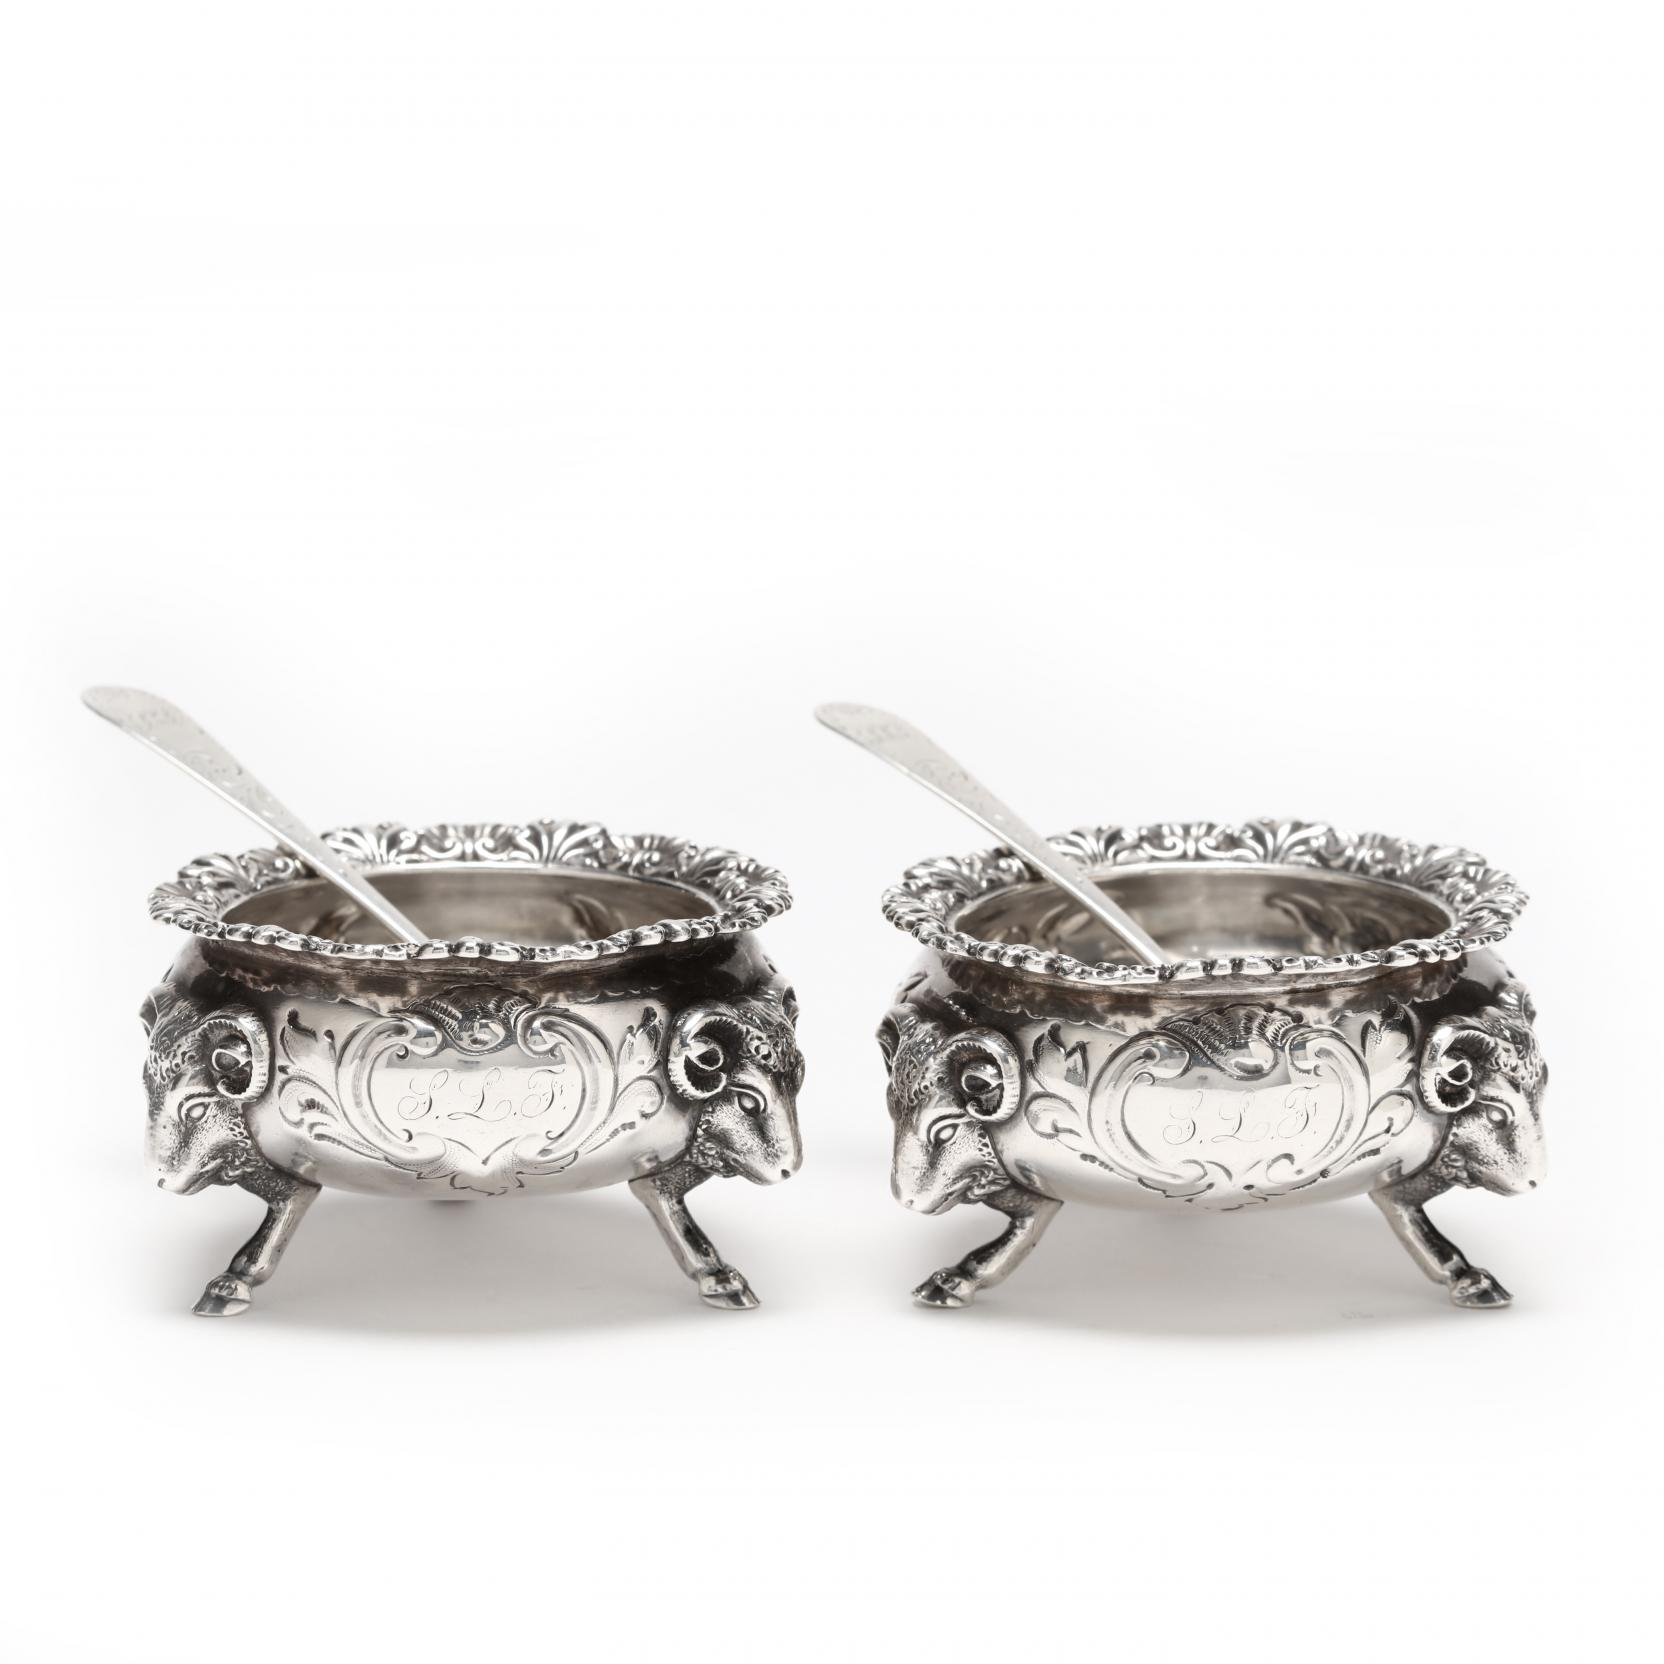 a-pair-of-gorham-coin-silver-salt-cellars-and-a-pair-of-baltimore-coin-silver-salt-spoons